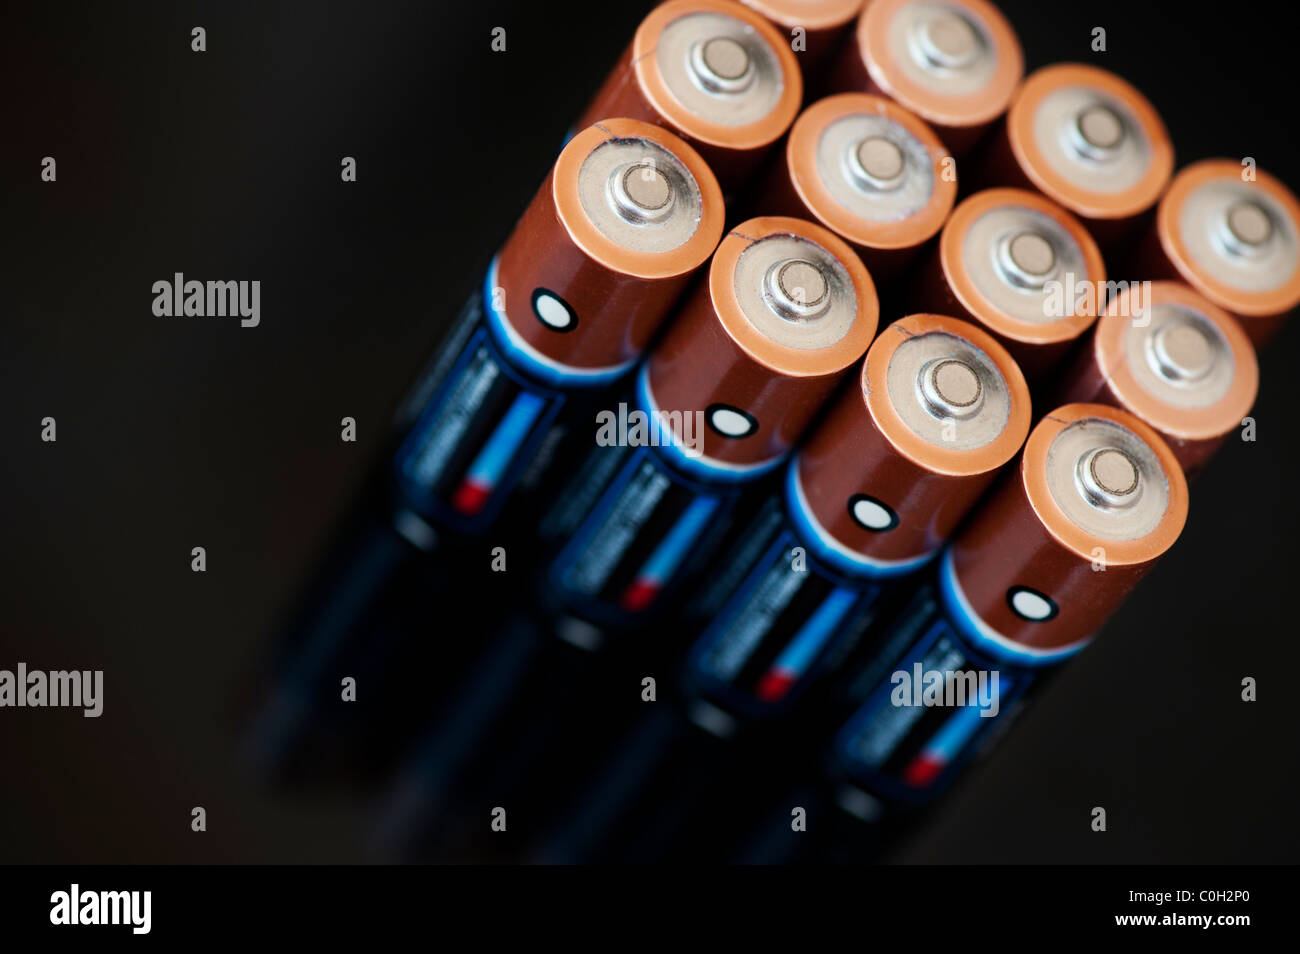 Duracell batteries abstract - Stock Image